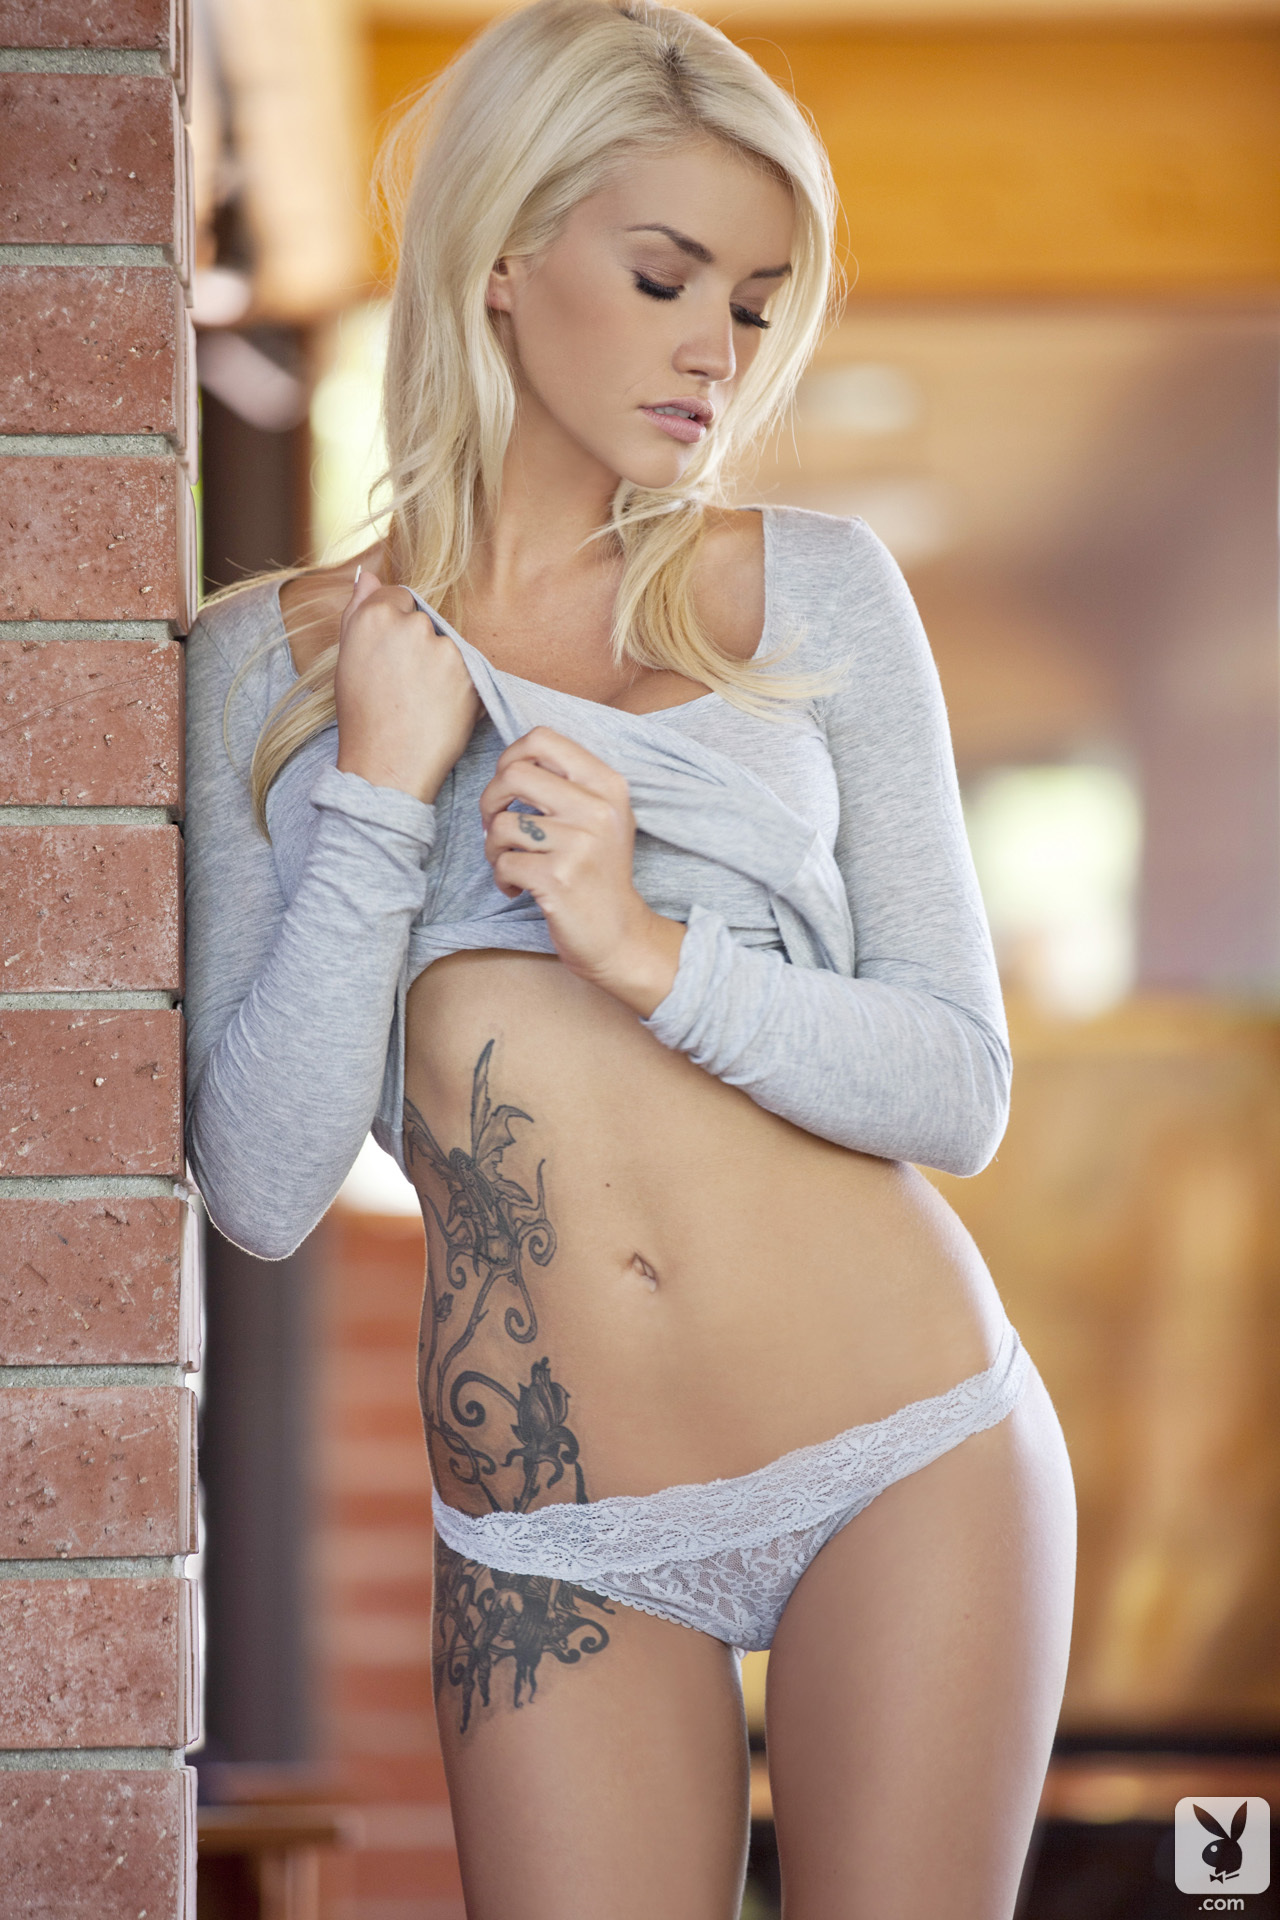 Taylor Seinturier Cybergirl Of The Month July 2012 Blonde Lust (38)